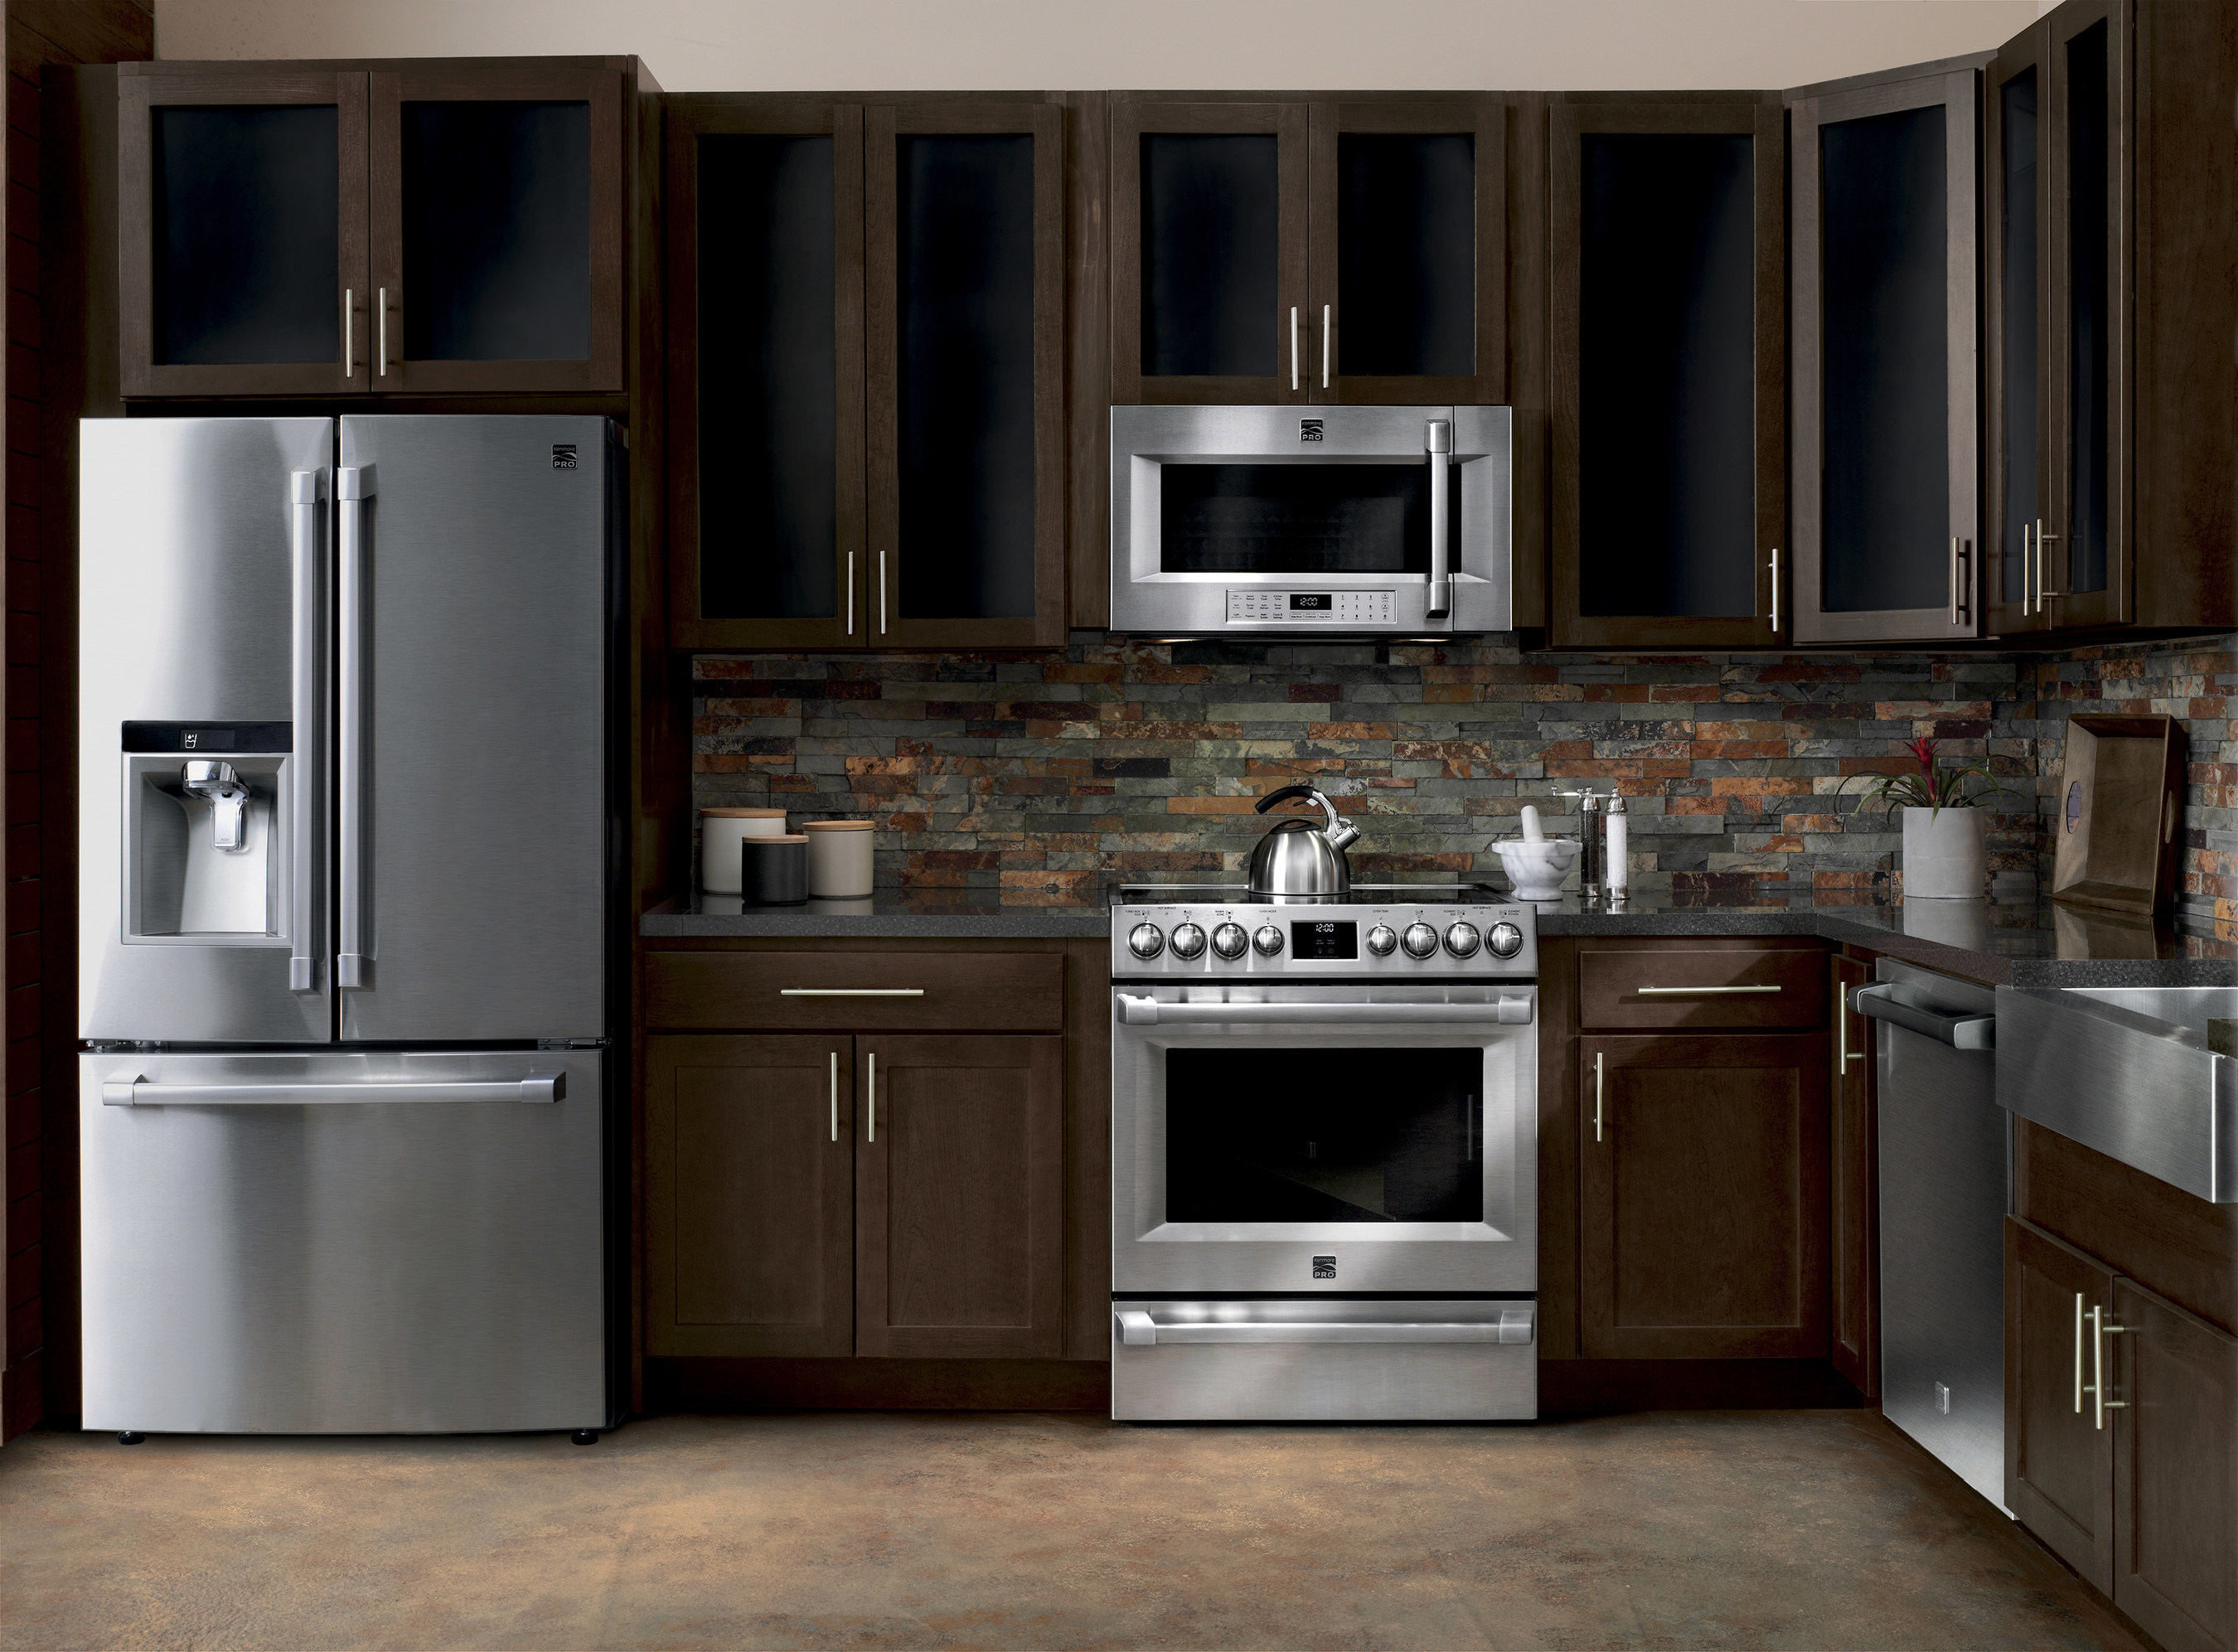 Merveilleux The New Kenmore PRO(R) Kitchen Appliance Suite Delivers Luxury Performance  At An Affordable